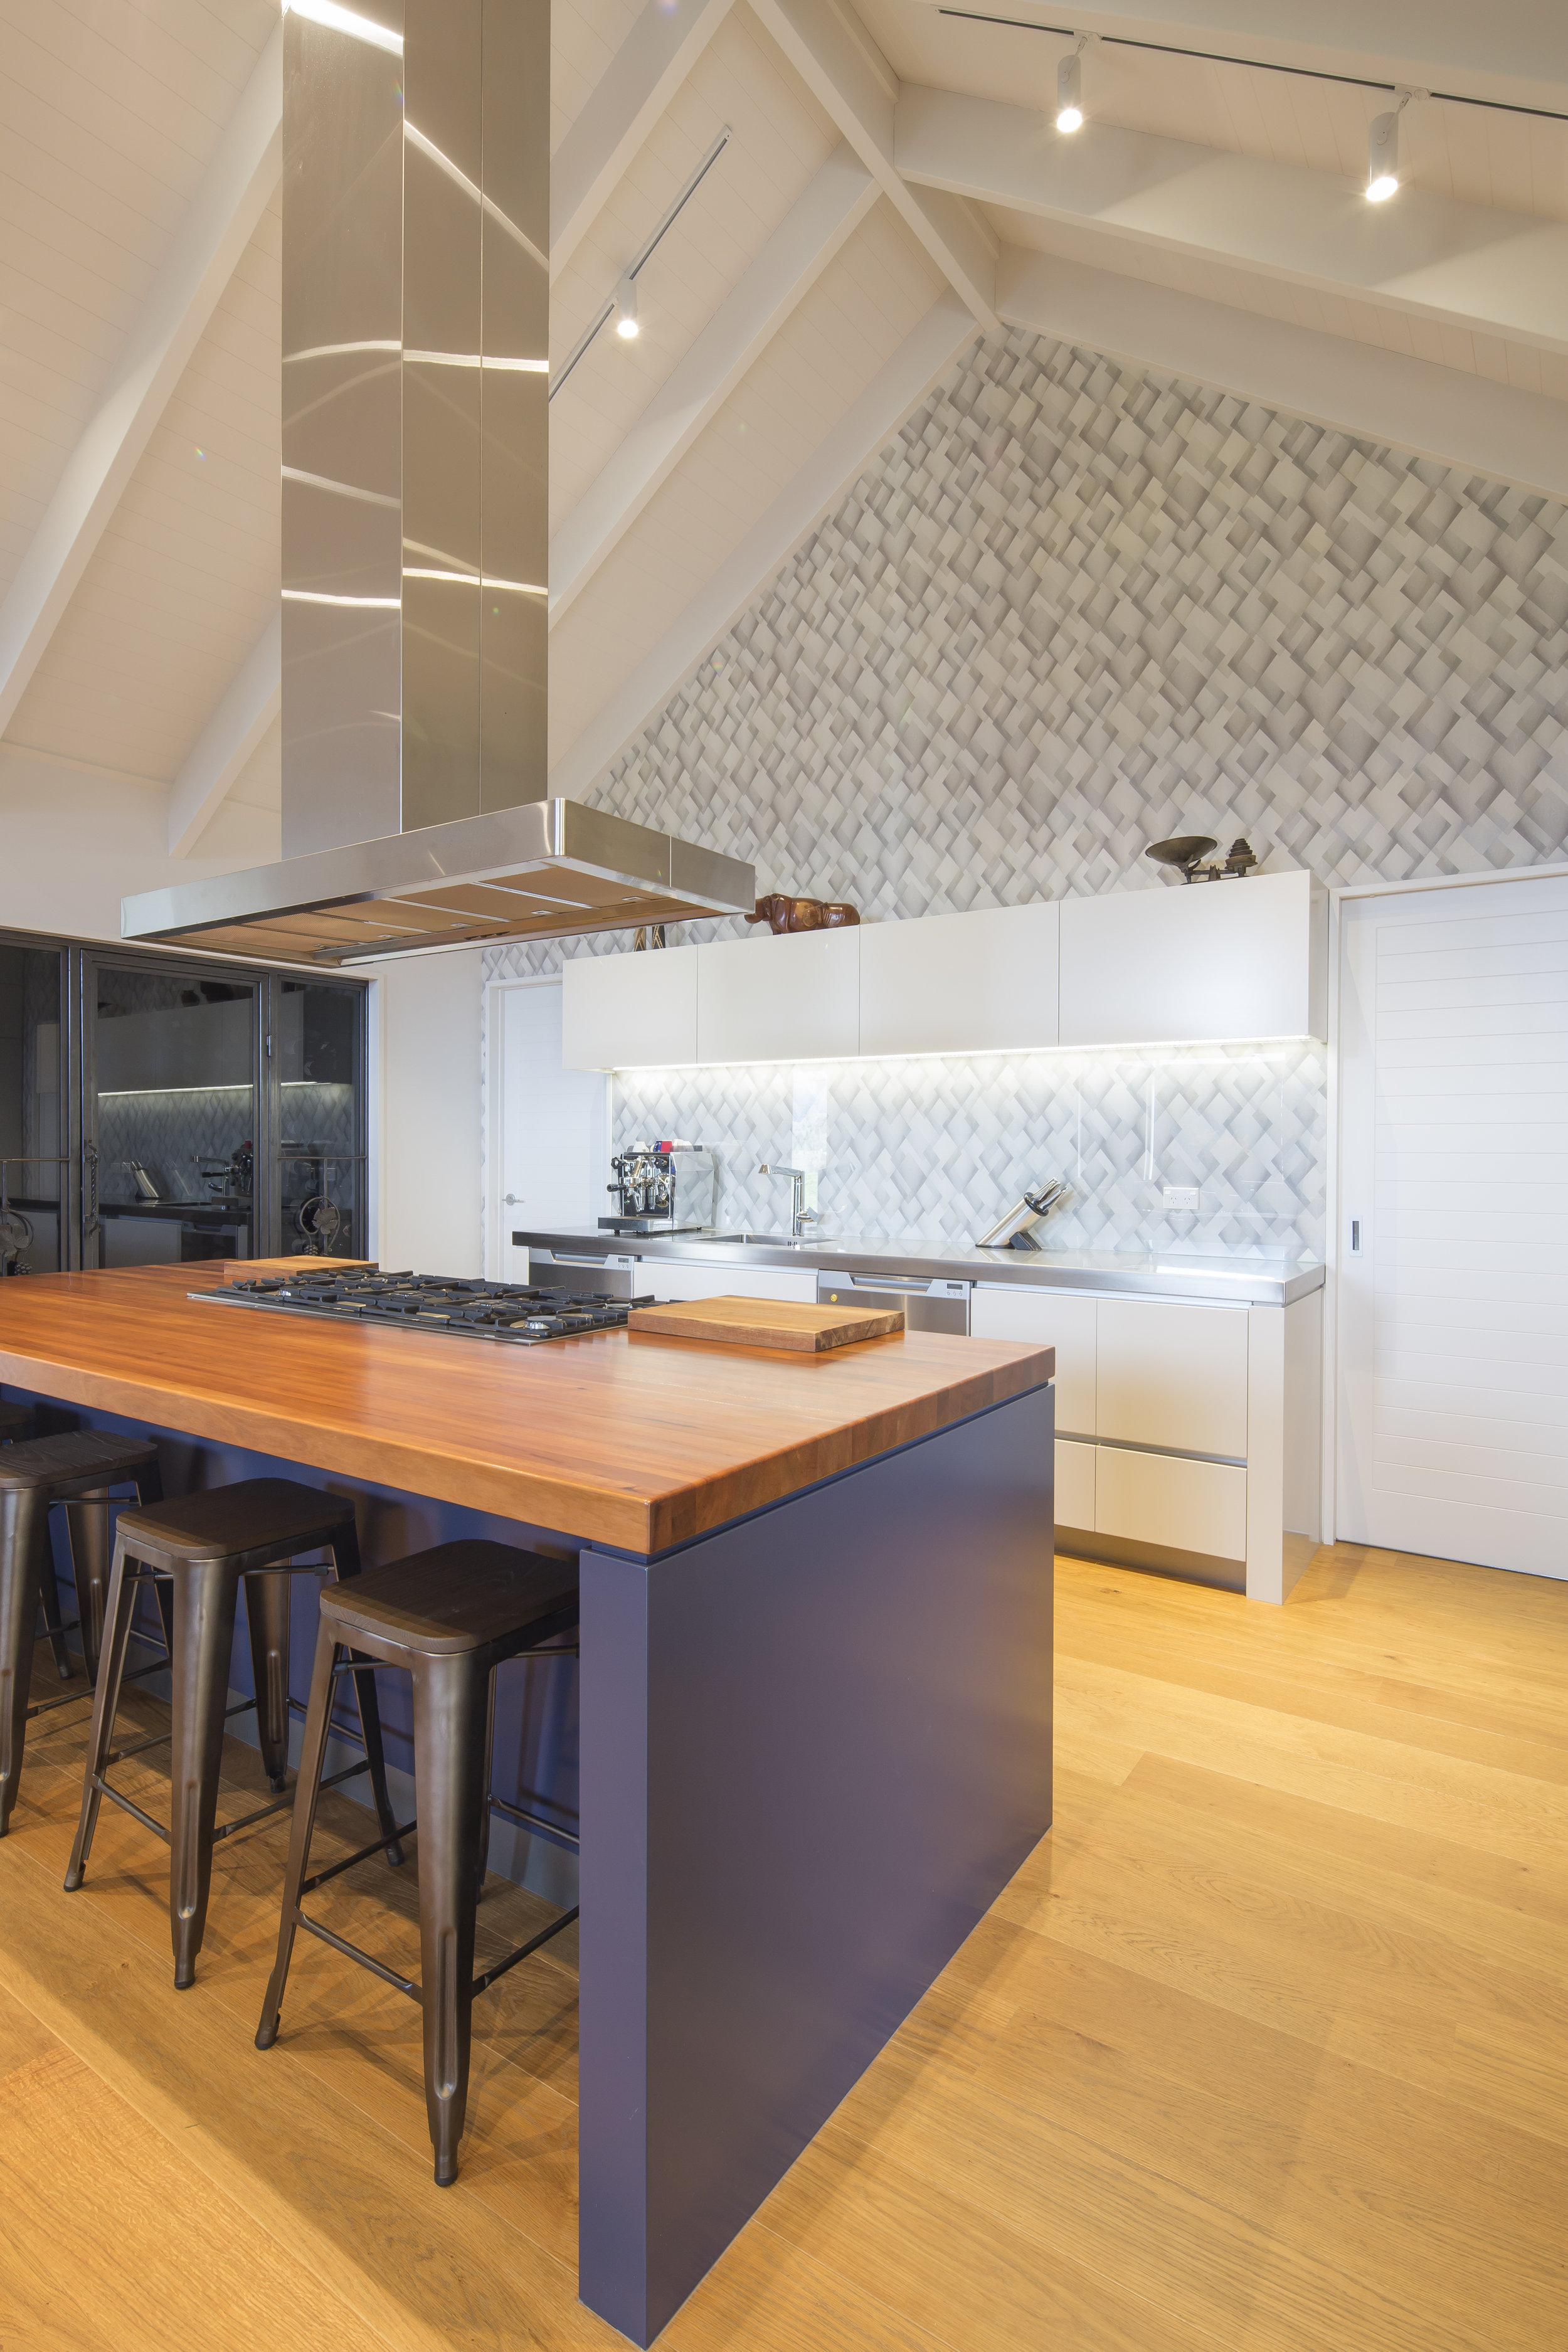 The kitchen's wallpaper complements the views out of the windows